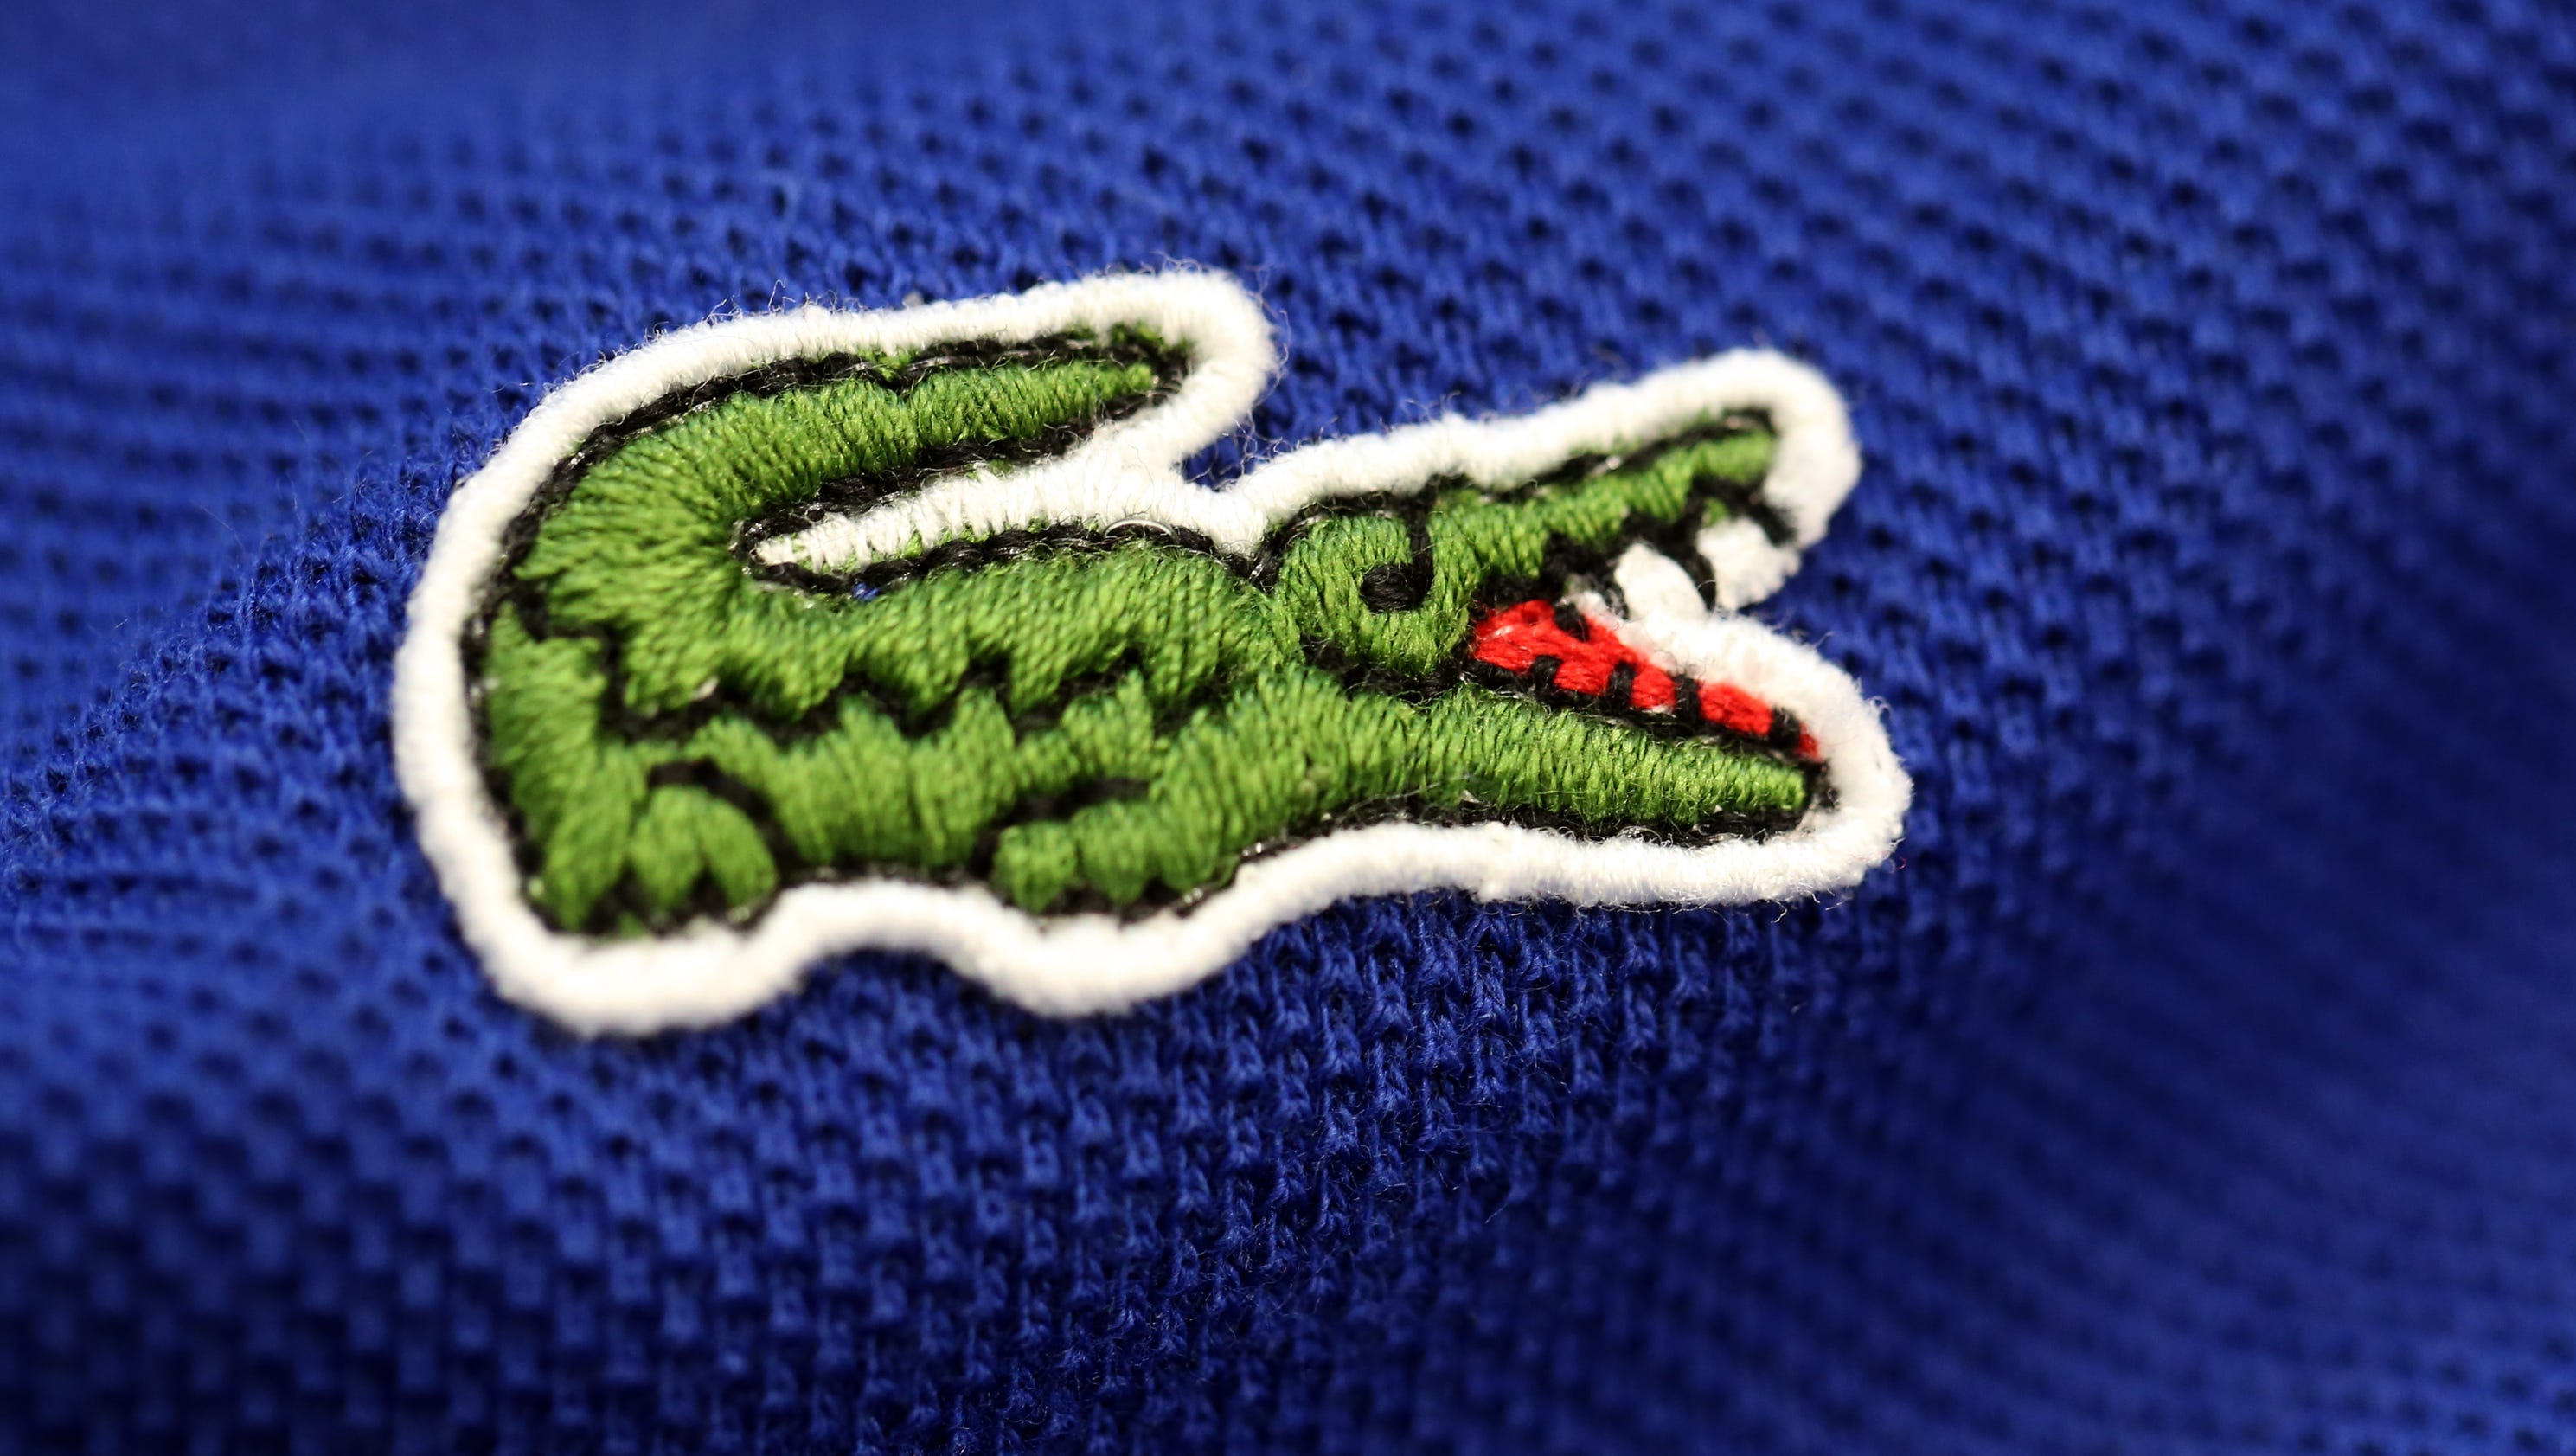 Lacoste replaces polo shirt crocodile logo with 10 endangered species buycottarizona Image collections